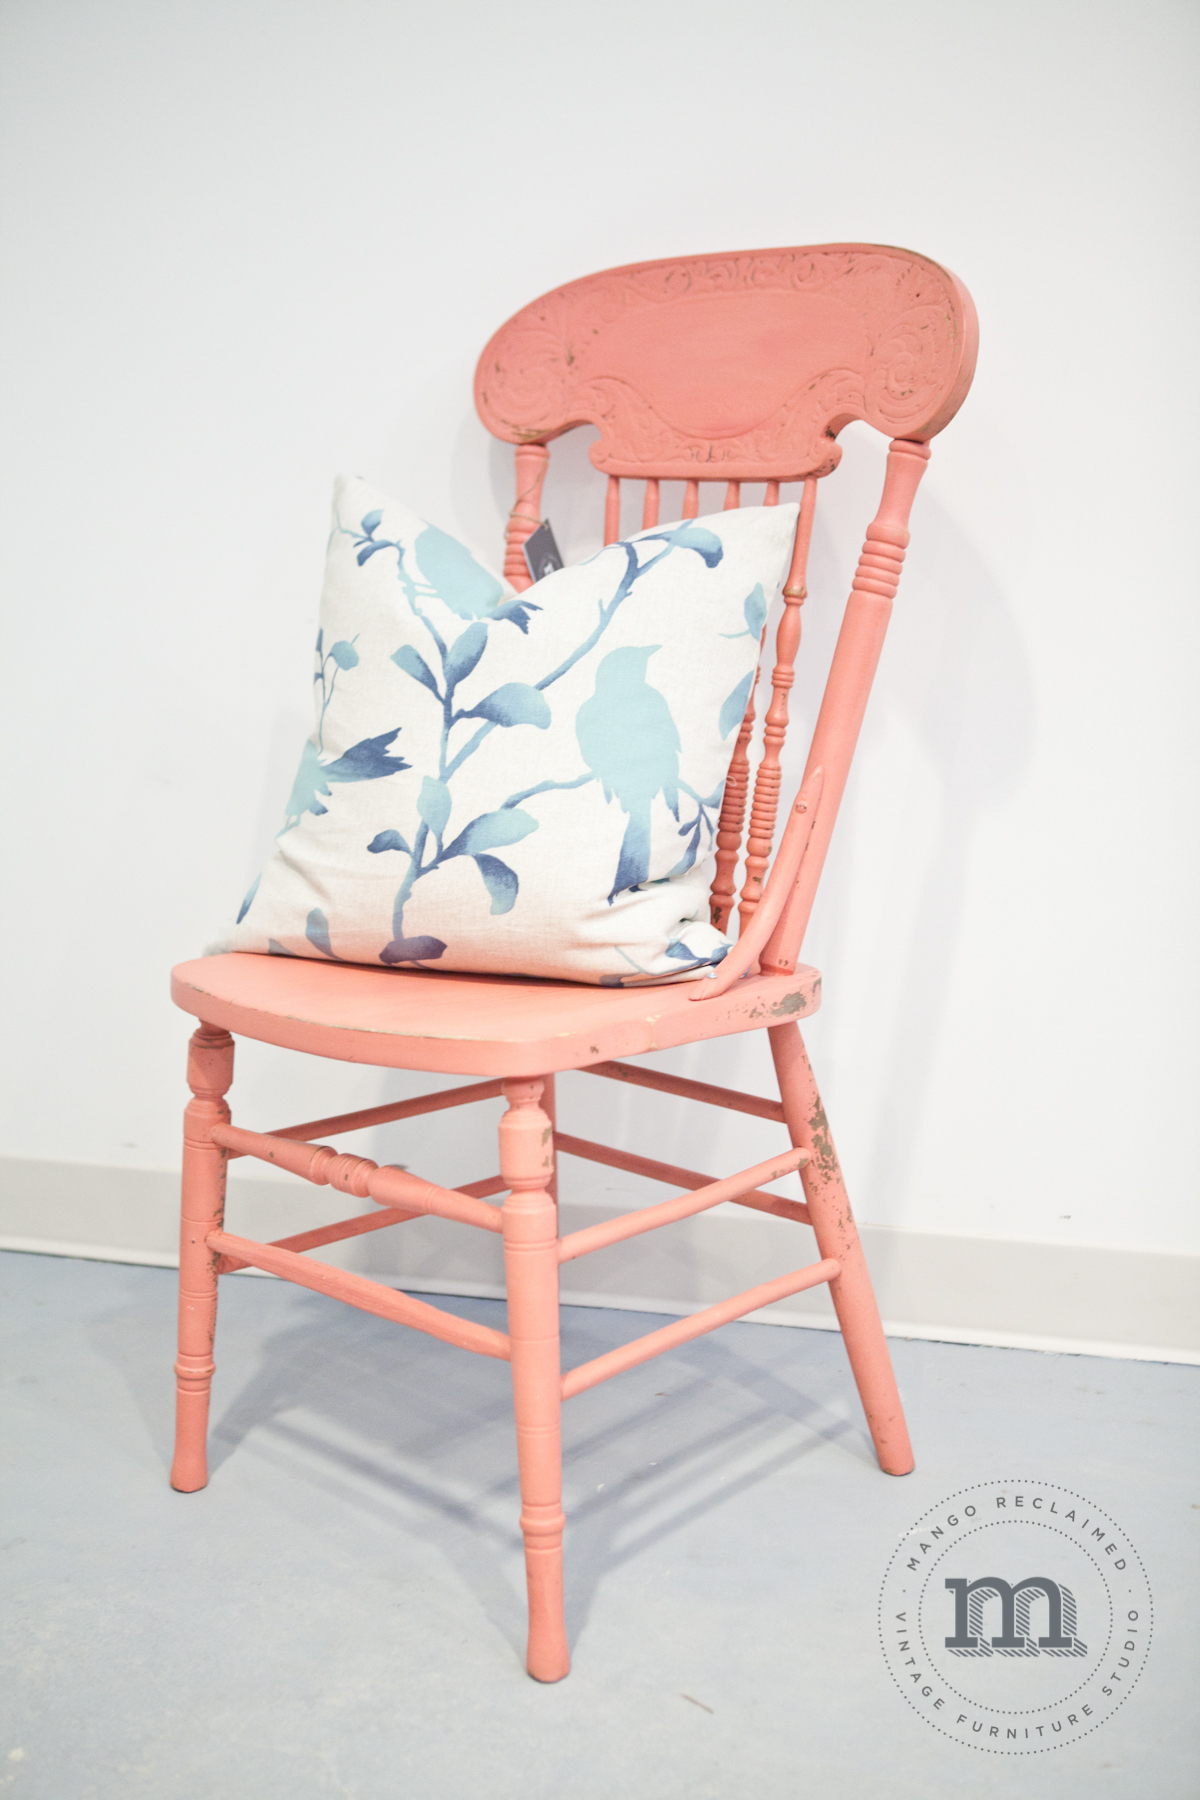 Adorable accent pillow designed by  The Inspiration Nest , also available at Mango Reclaimed and pairs perfectly with this chair. Accent chair, $75, accent pillow including down insert, $60.